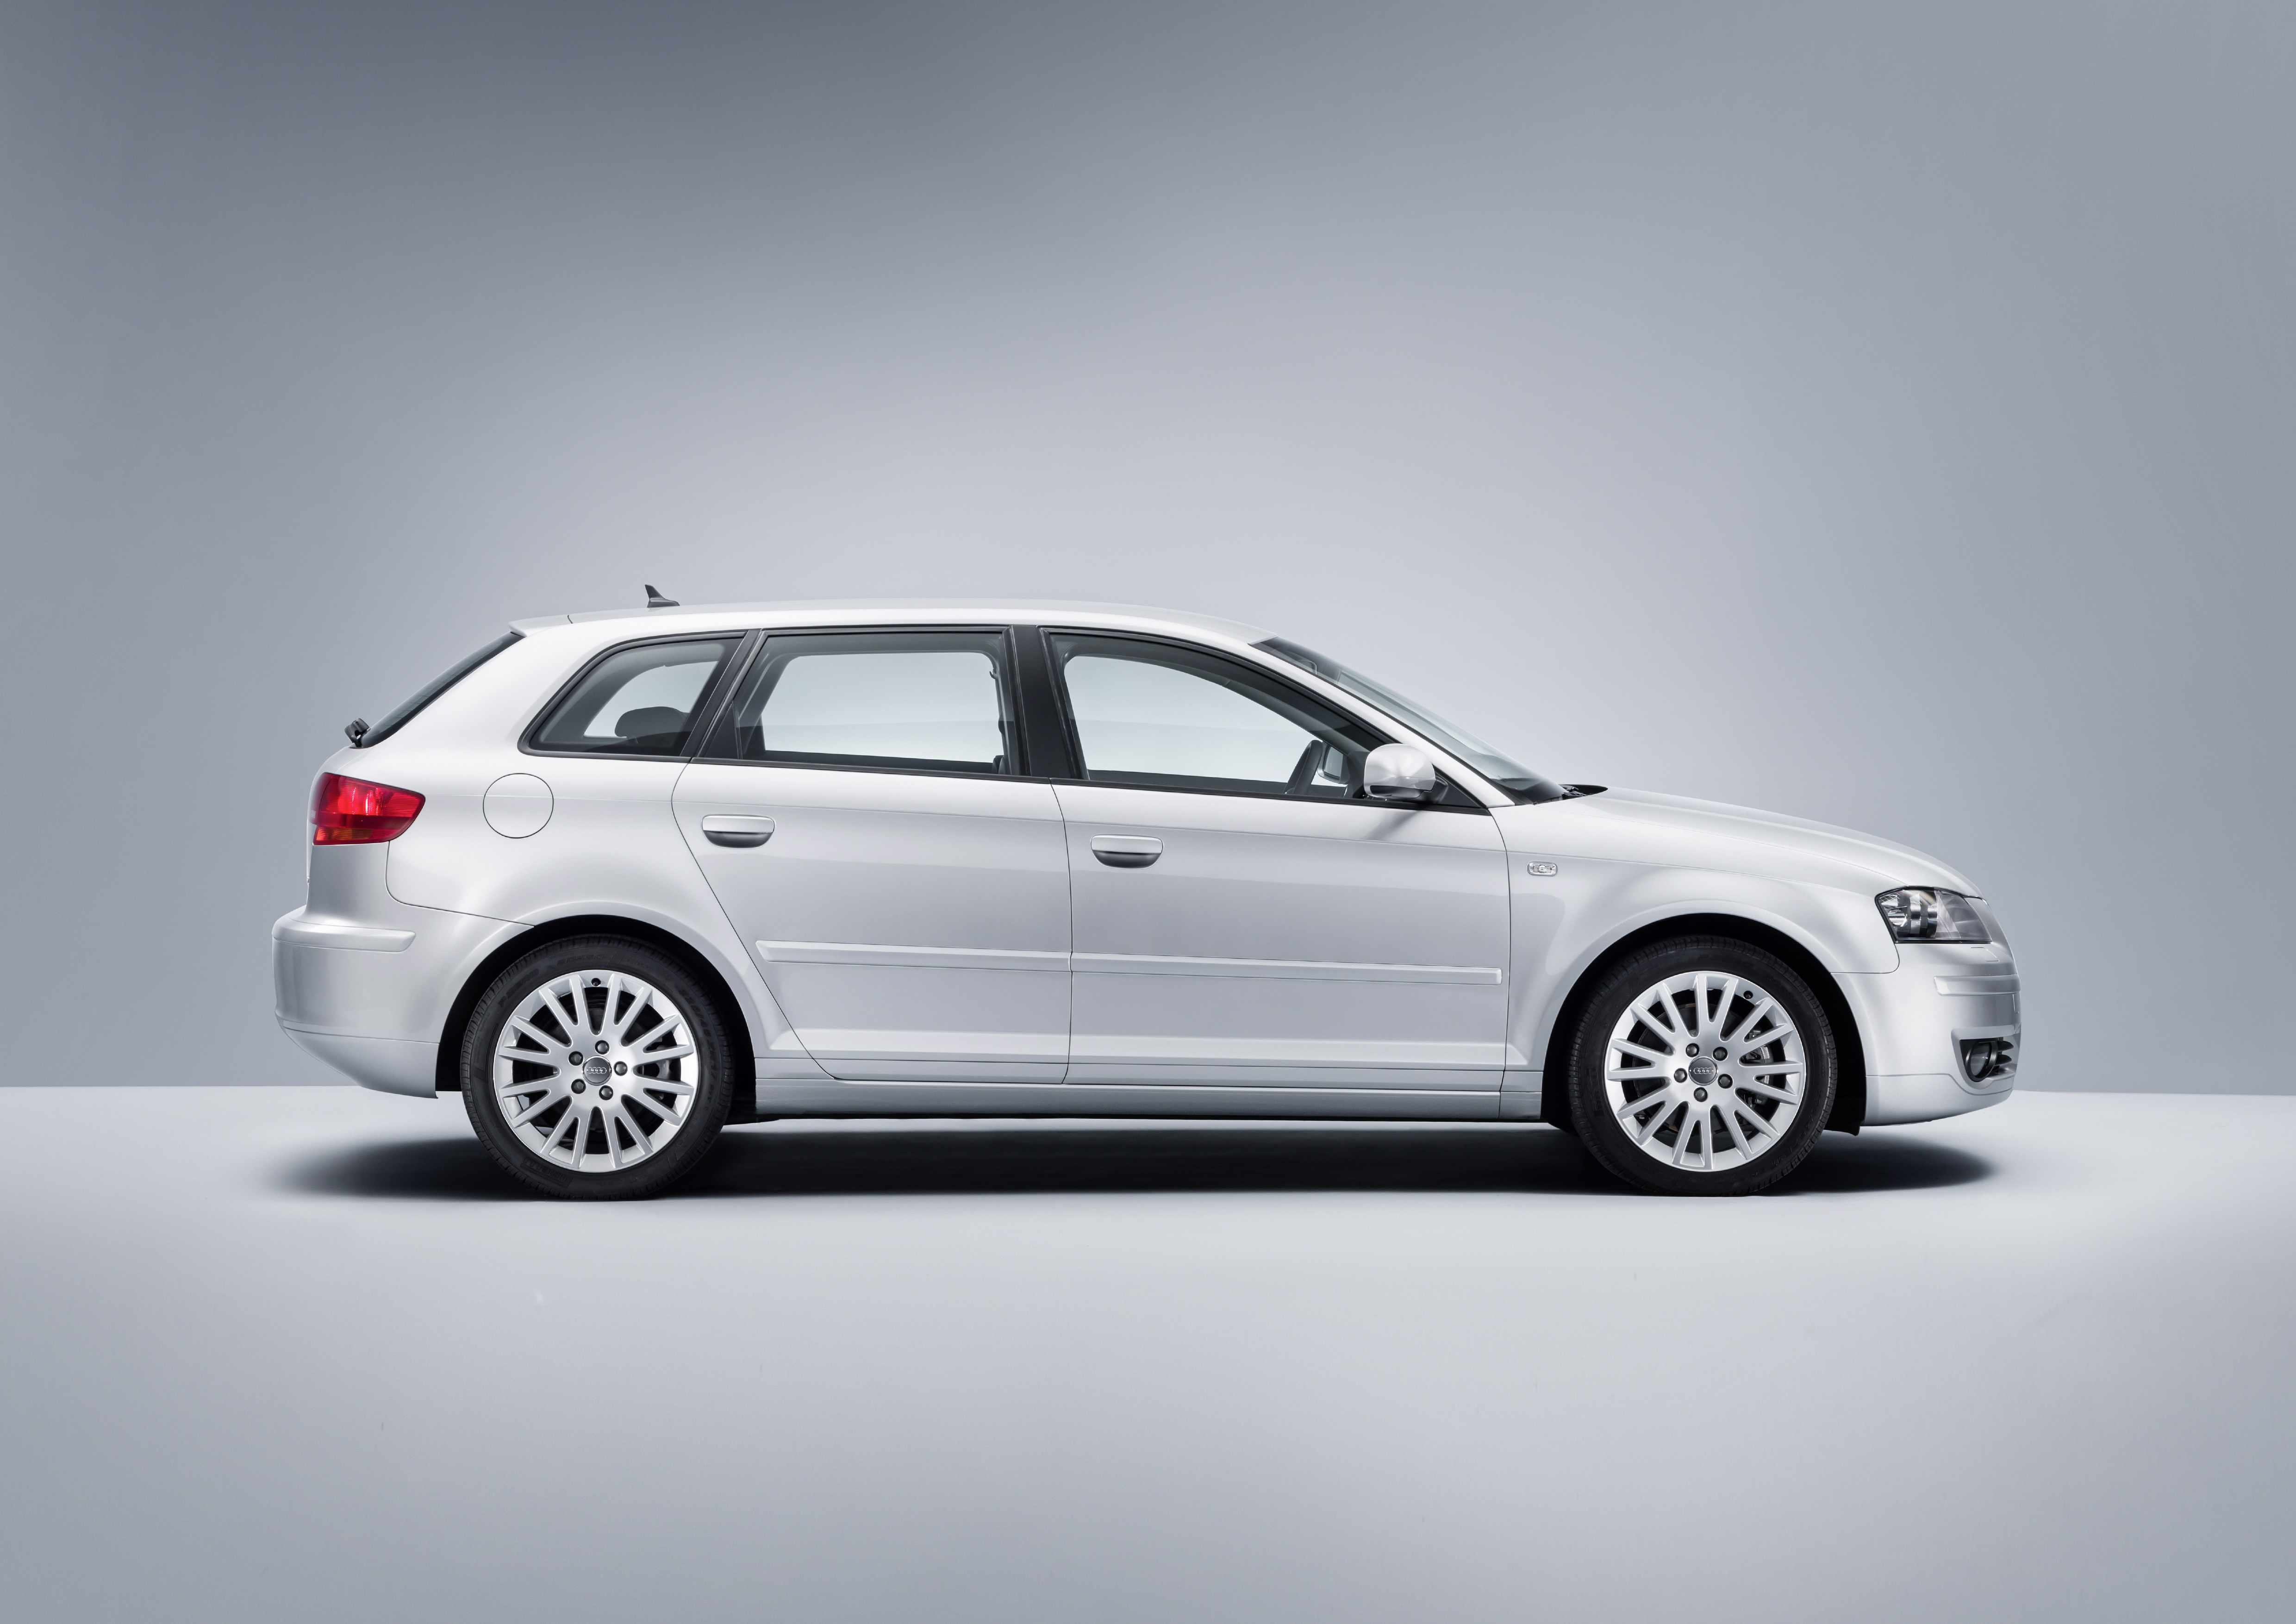 Audi A3 Sportback, Generation 2, Year of manufacture 2004